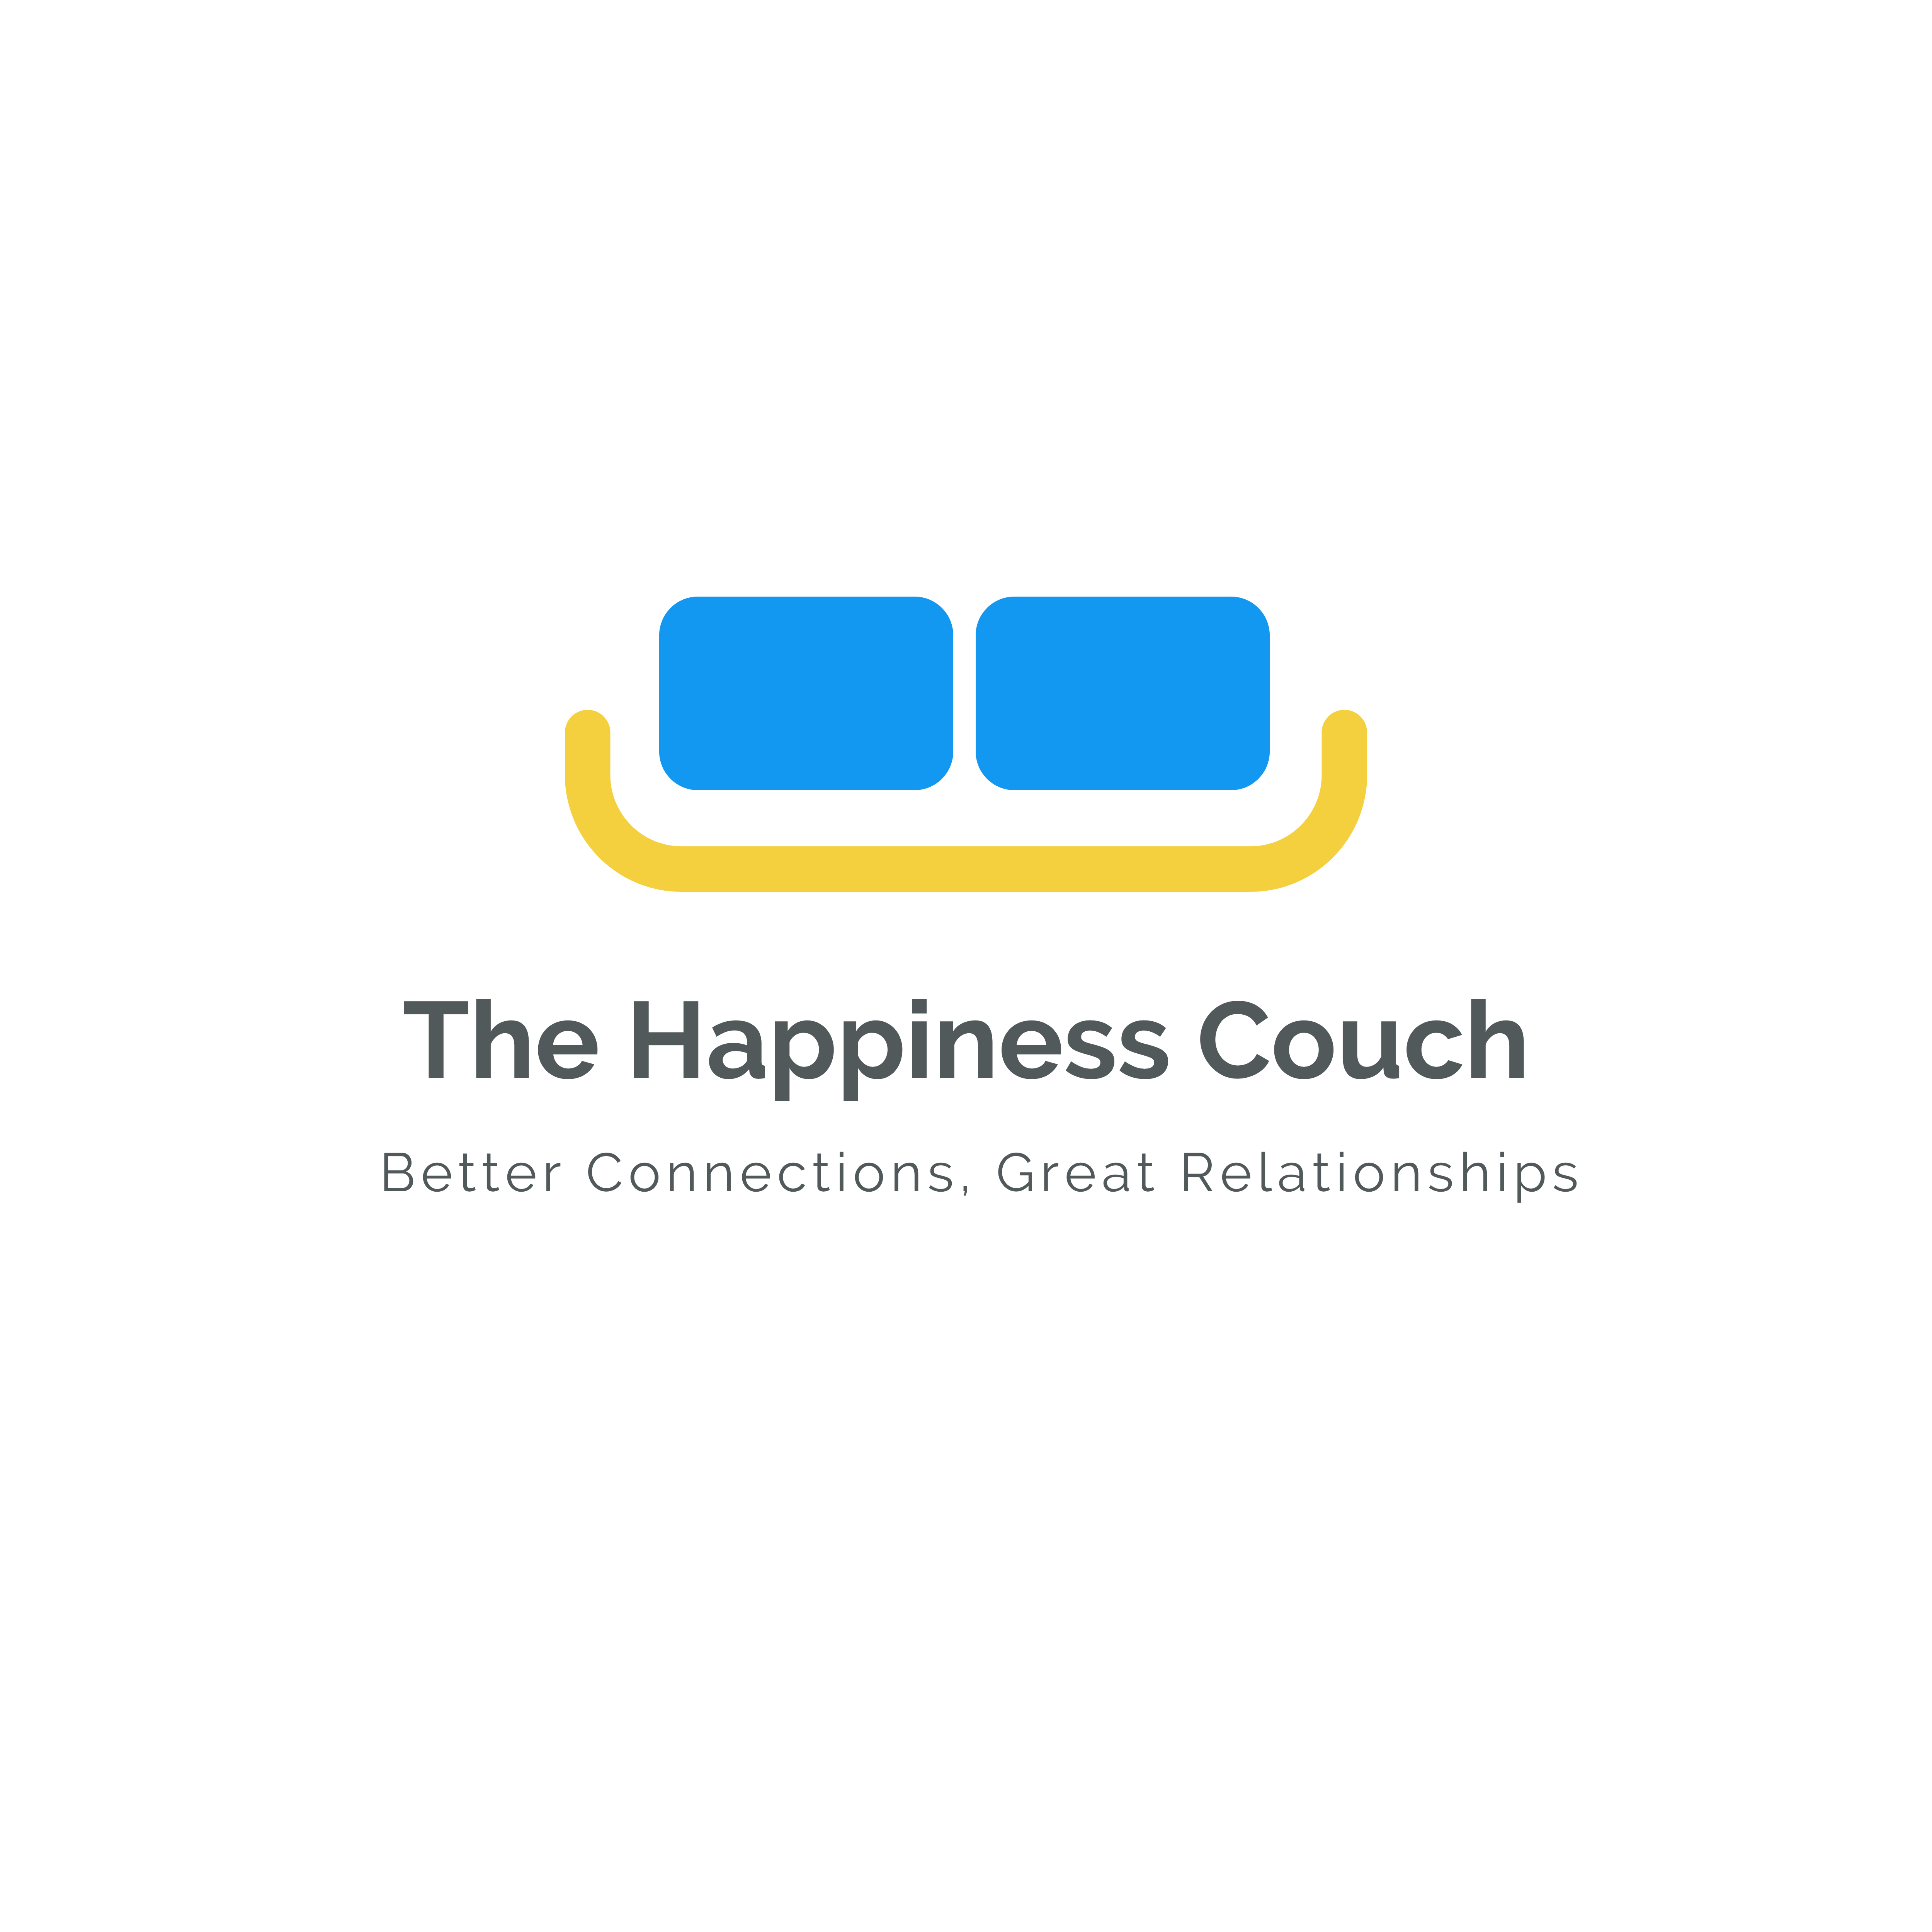 The Happiness Couch